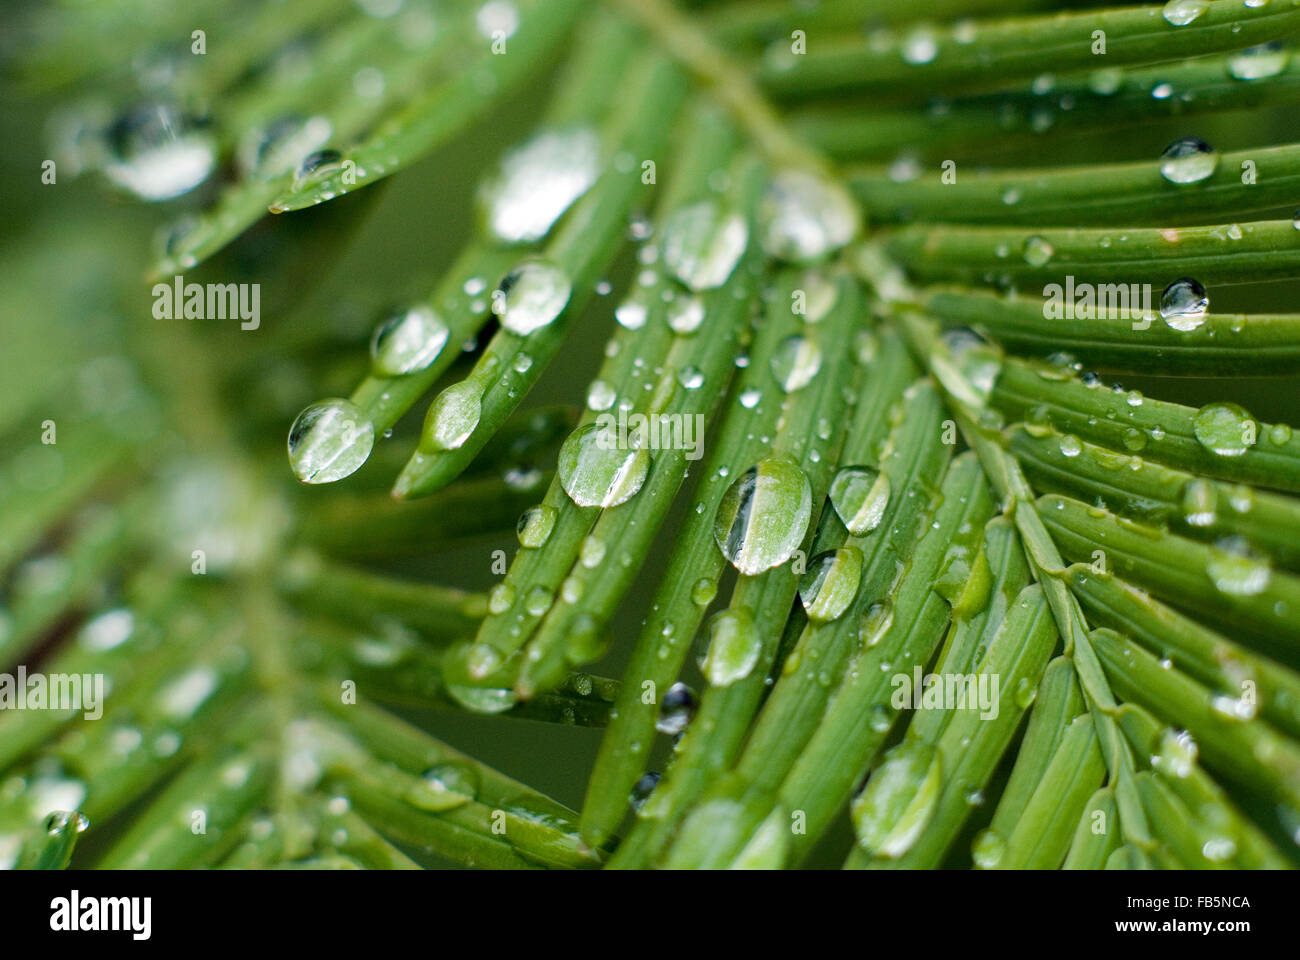 Waterdrops on Meta Sequoia(Metasequoia glyptostroboides) leaf - Stock Image